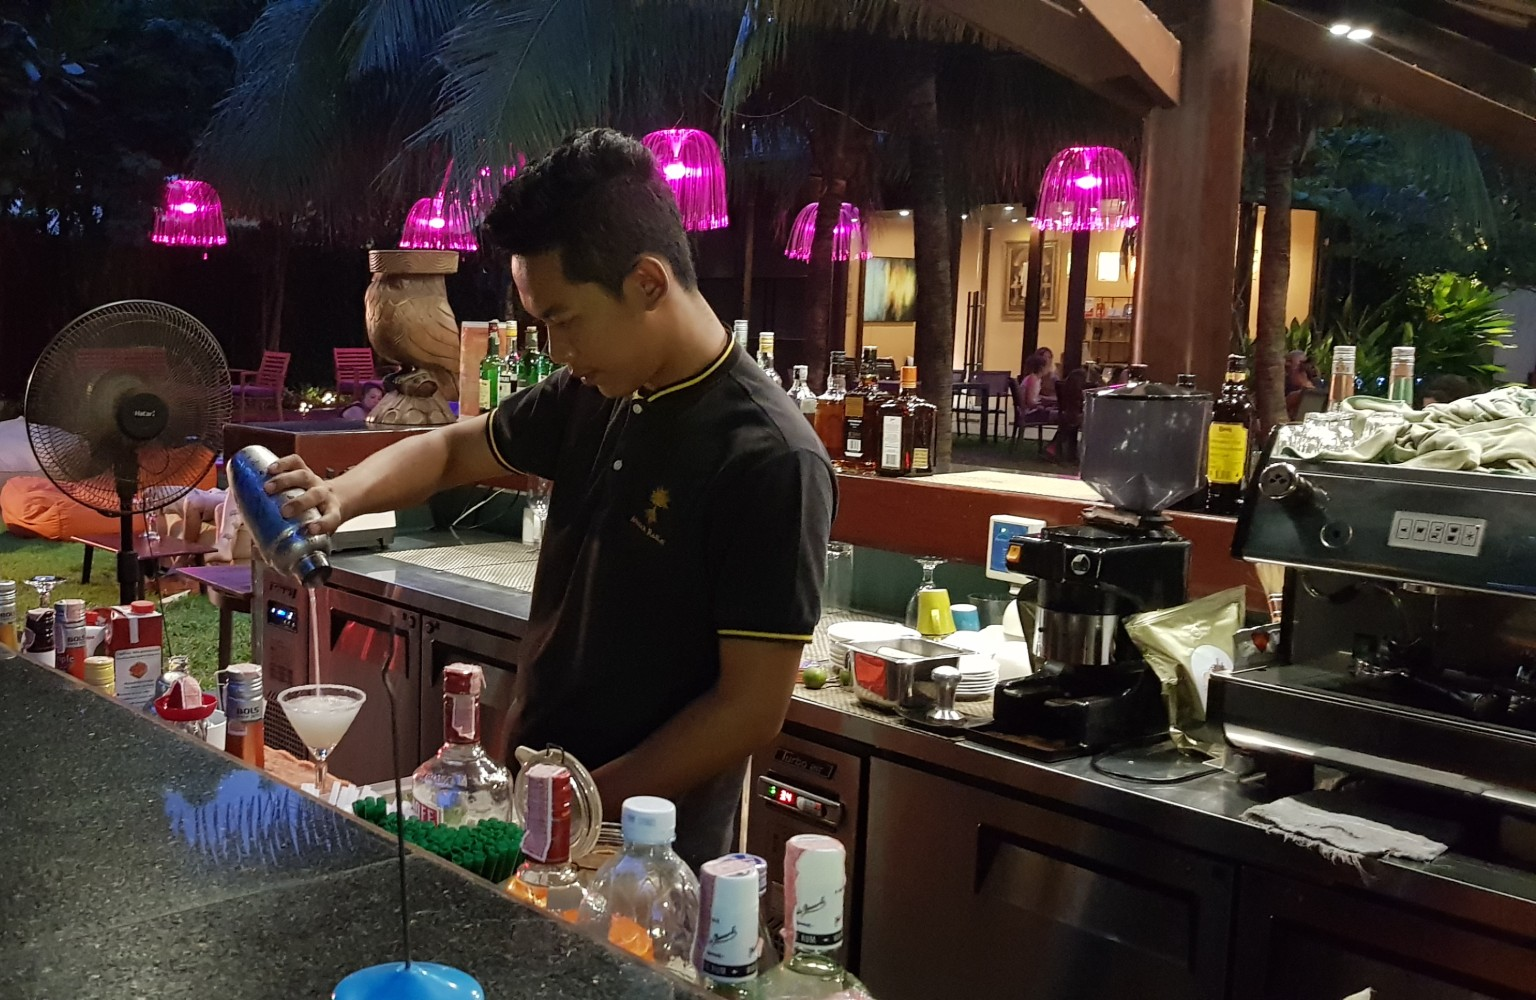 De barman die een cocktail maakt in de bar van het Avatar Railay Resort in Krabi Railay Beach